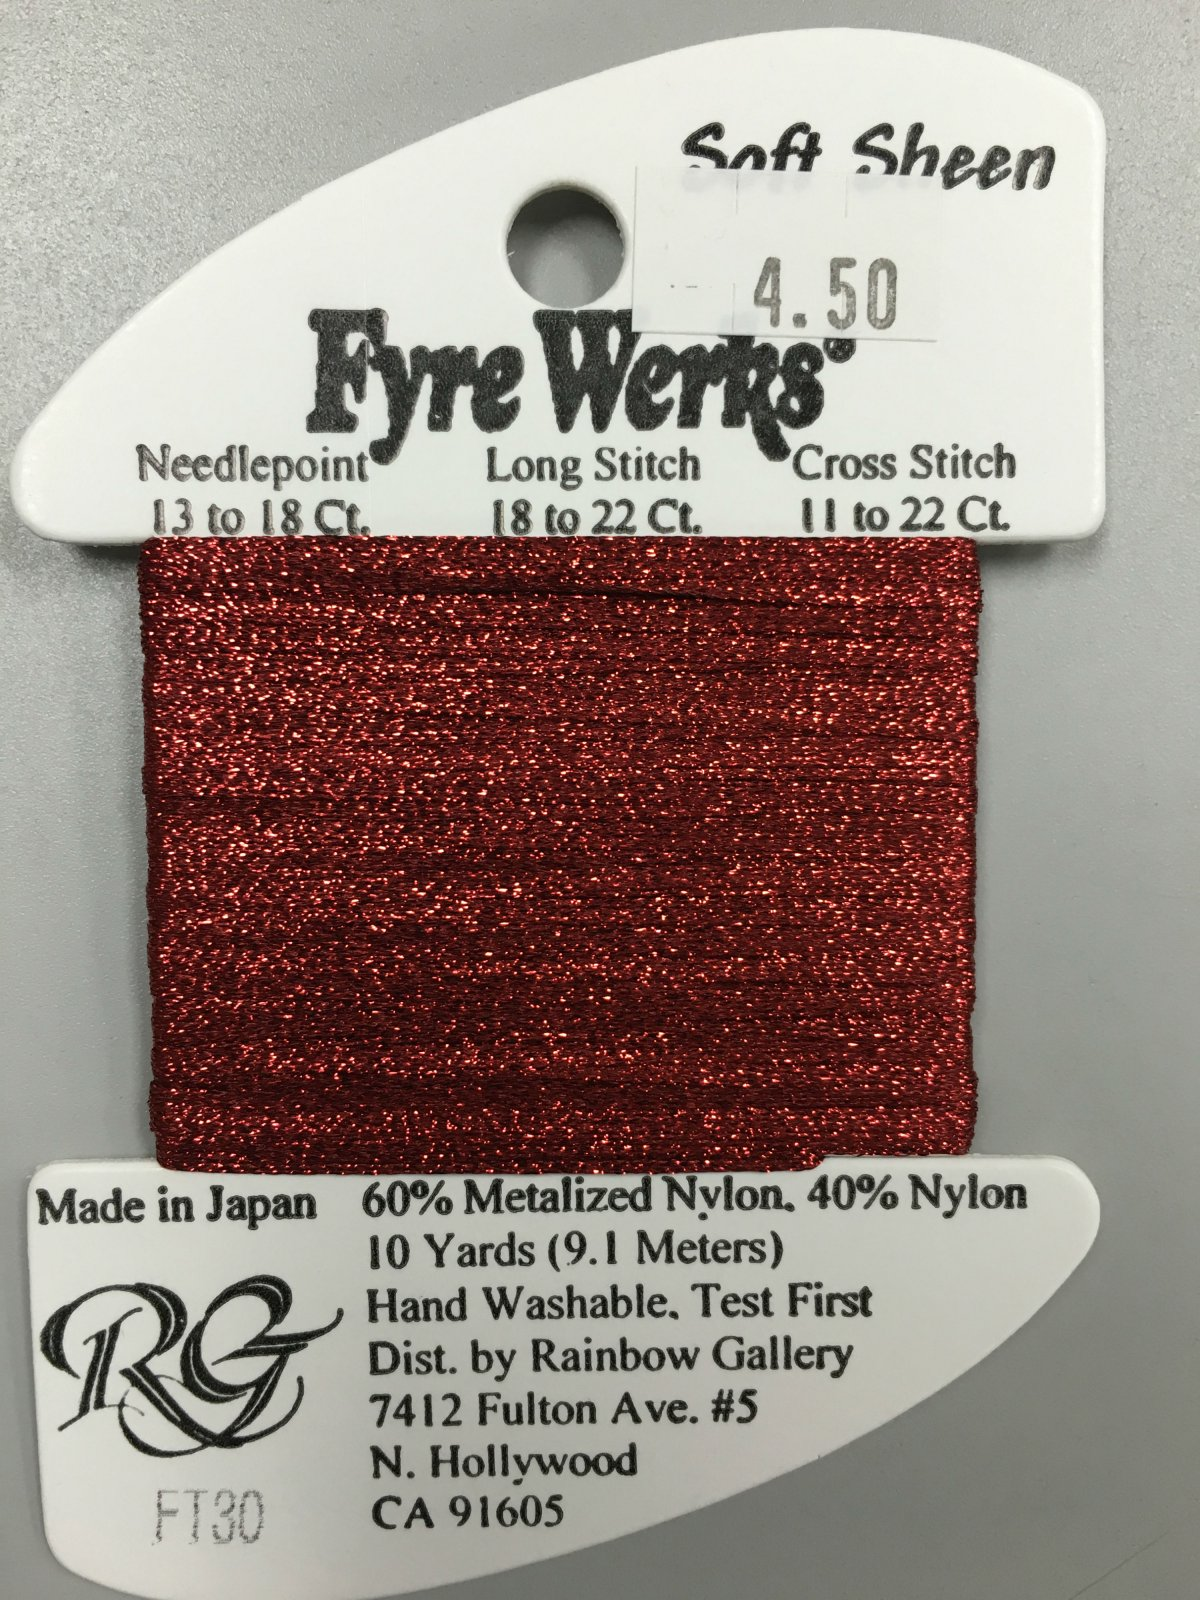 Fyre Werks Soft Sheen FT30